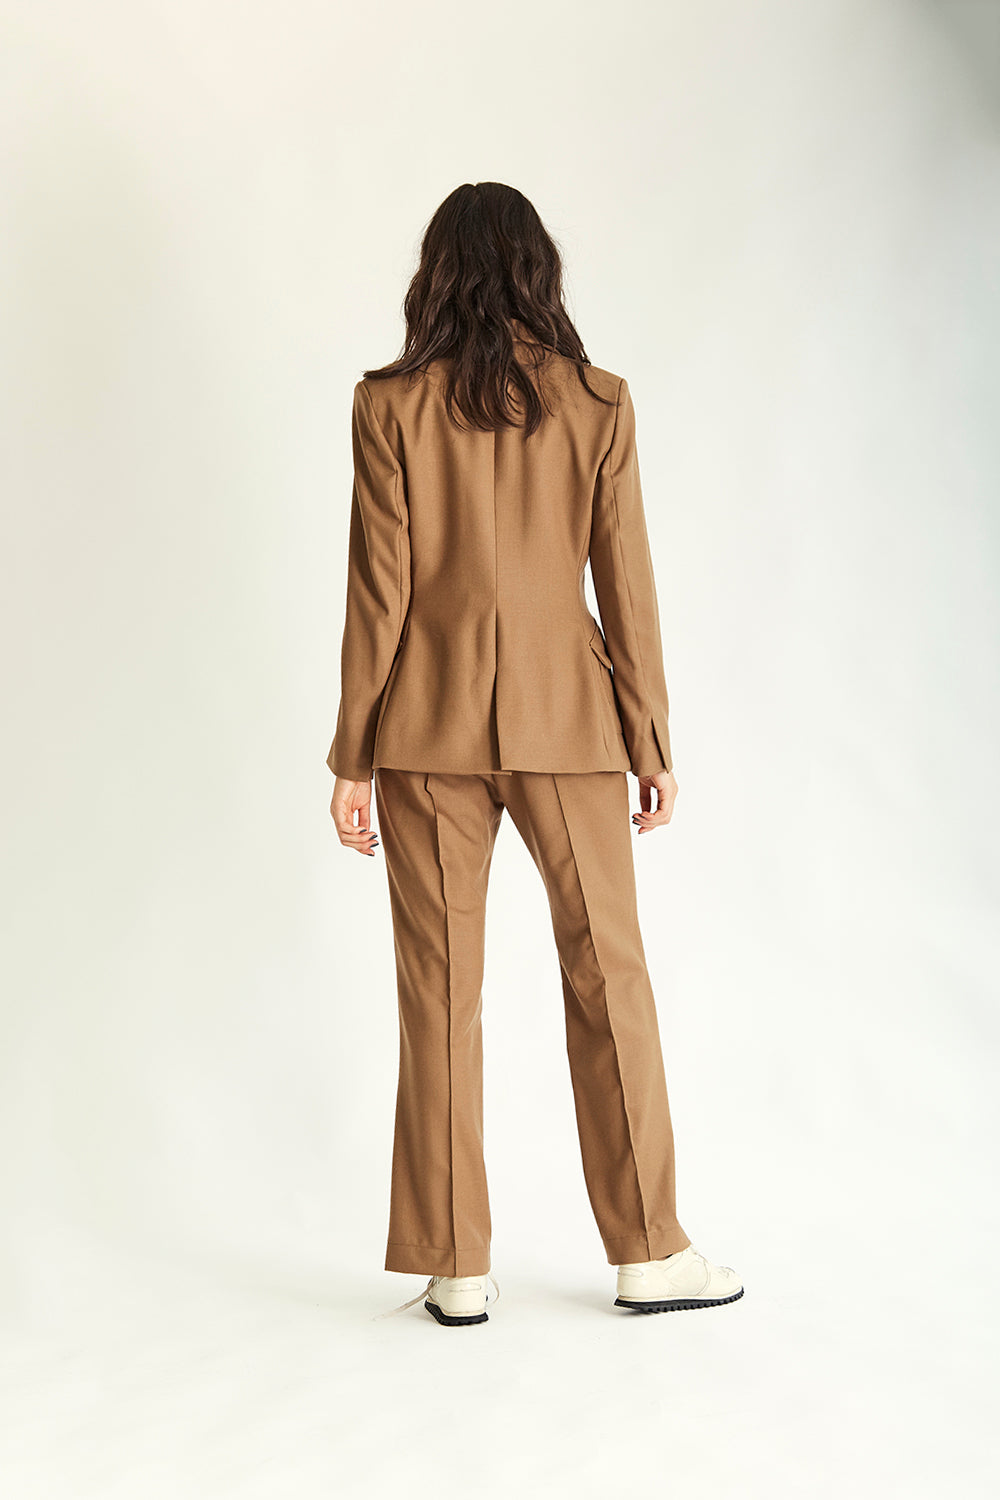 Clarke Toggle Blazer - Tan - Wynn Hamlyn — Shop